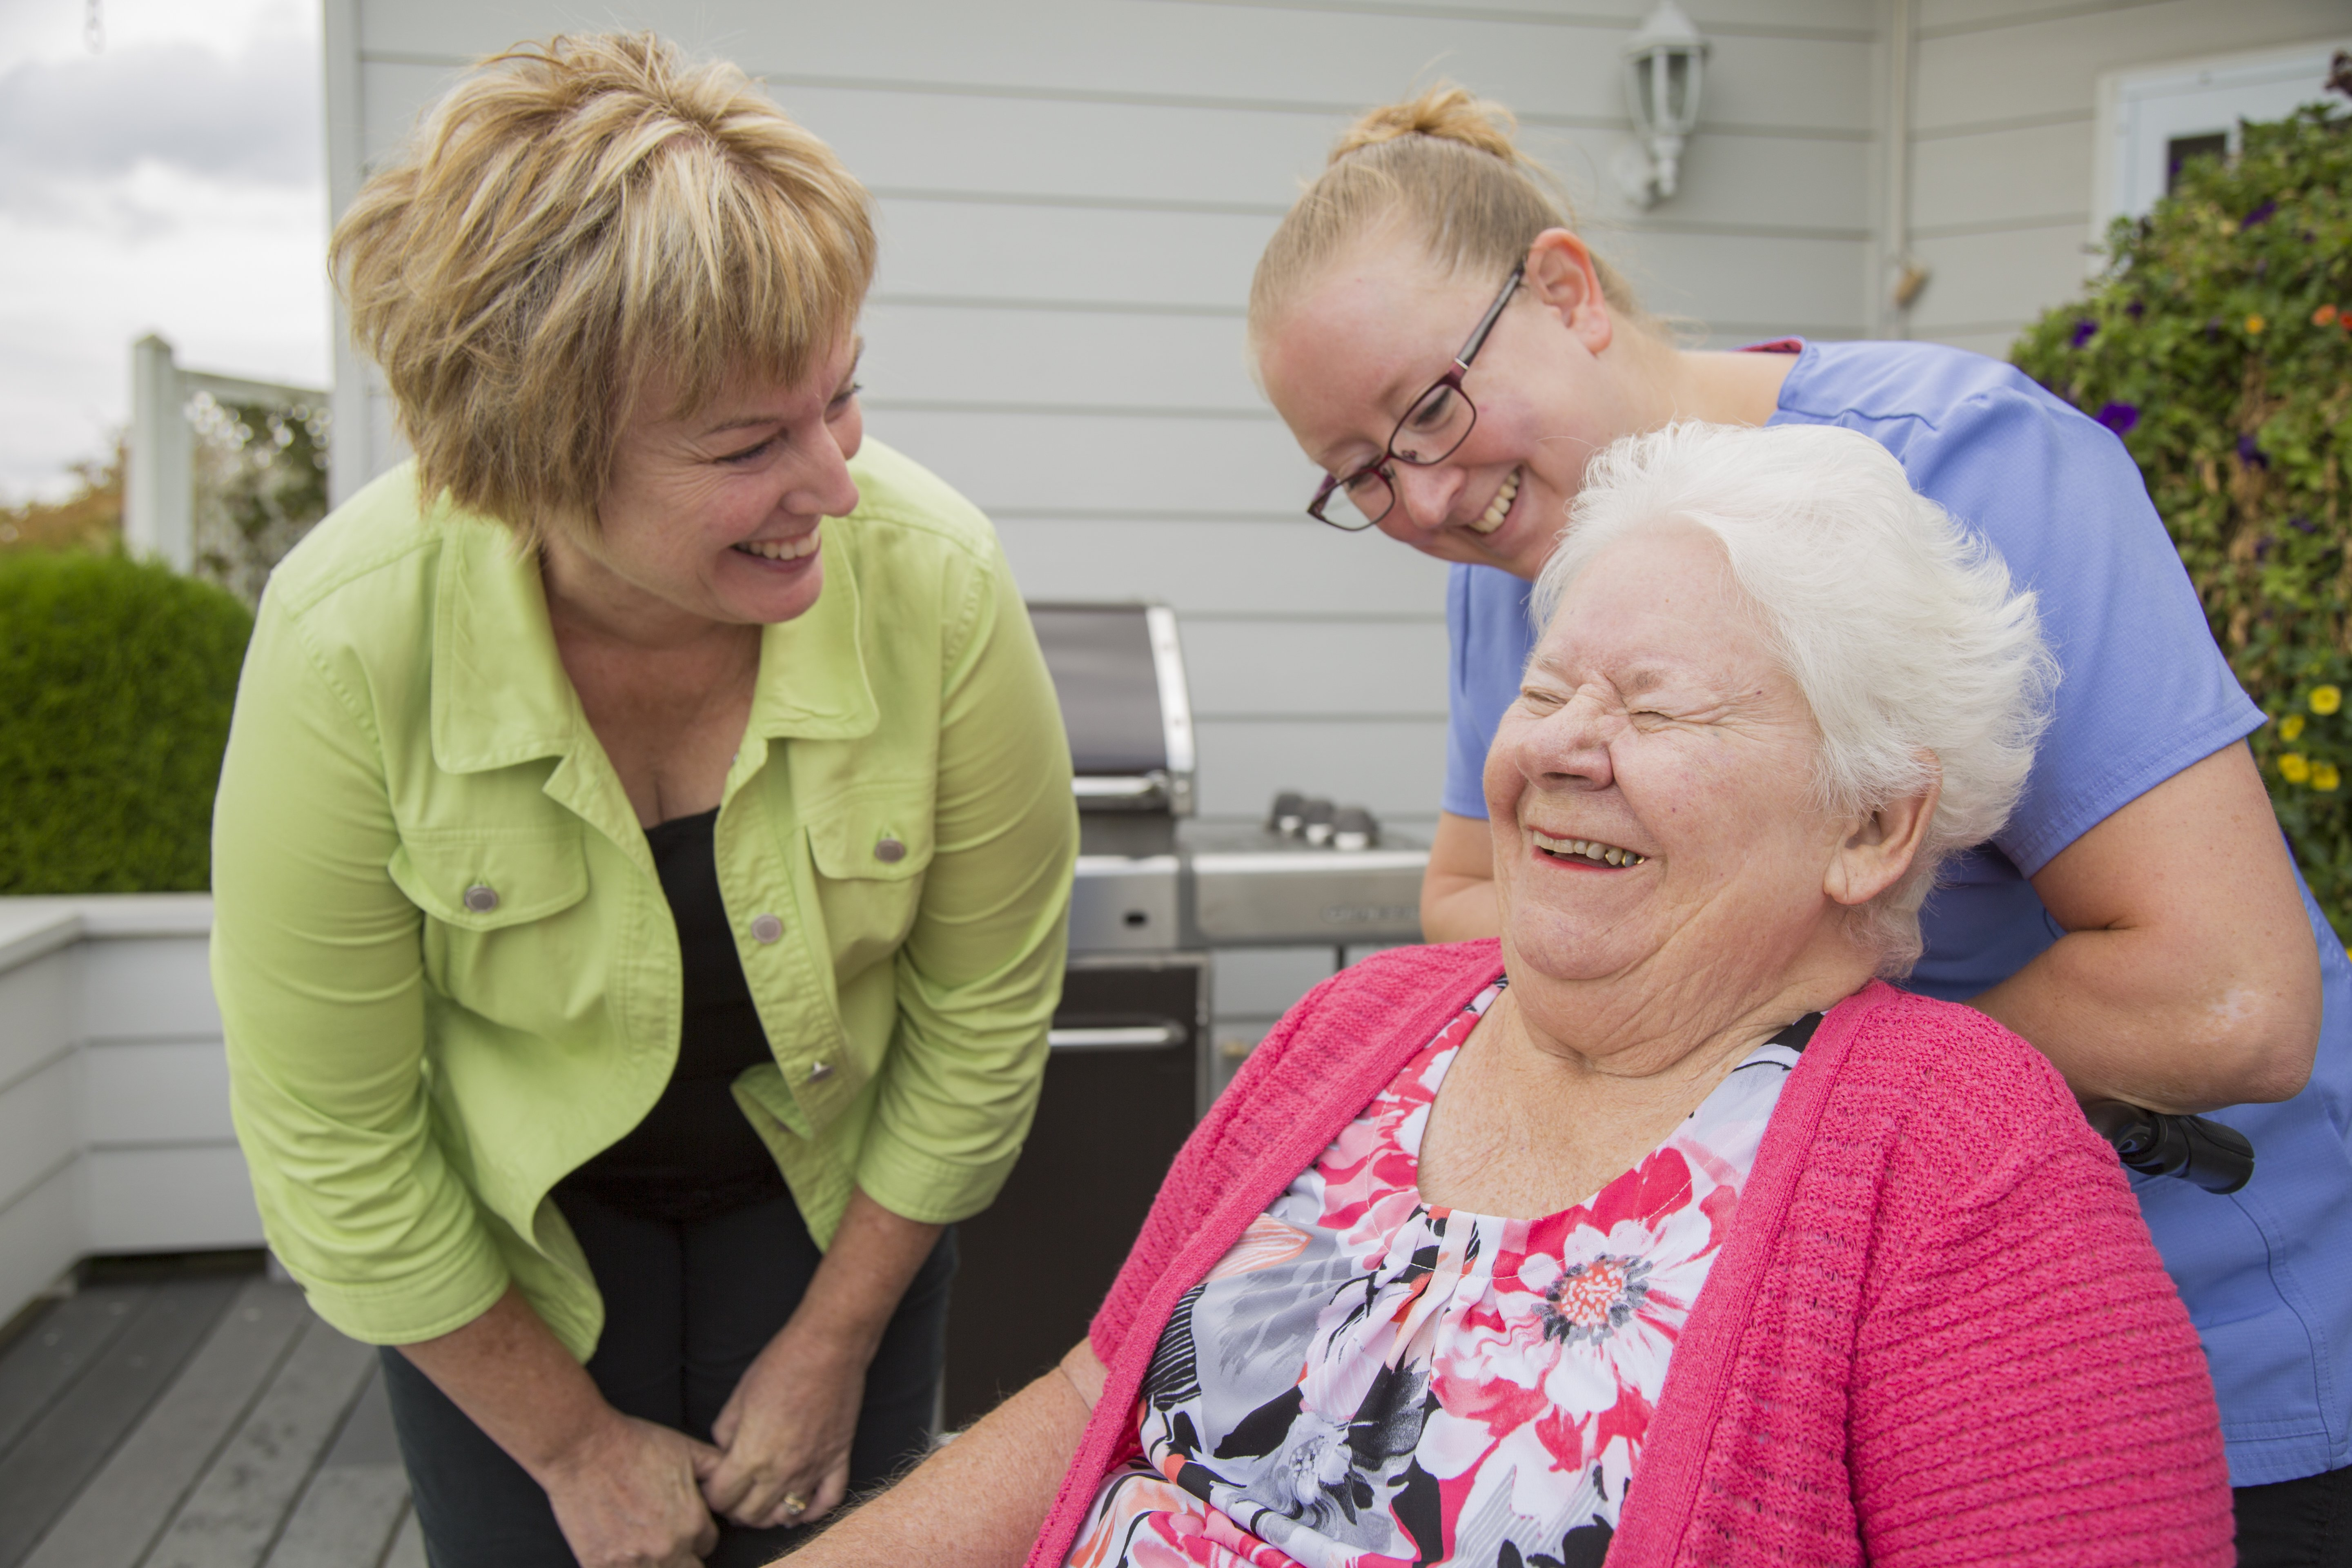 Two caregivers laugh with an elderly client outdoors on a patio.